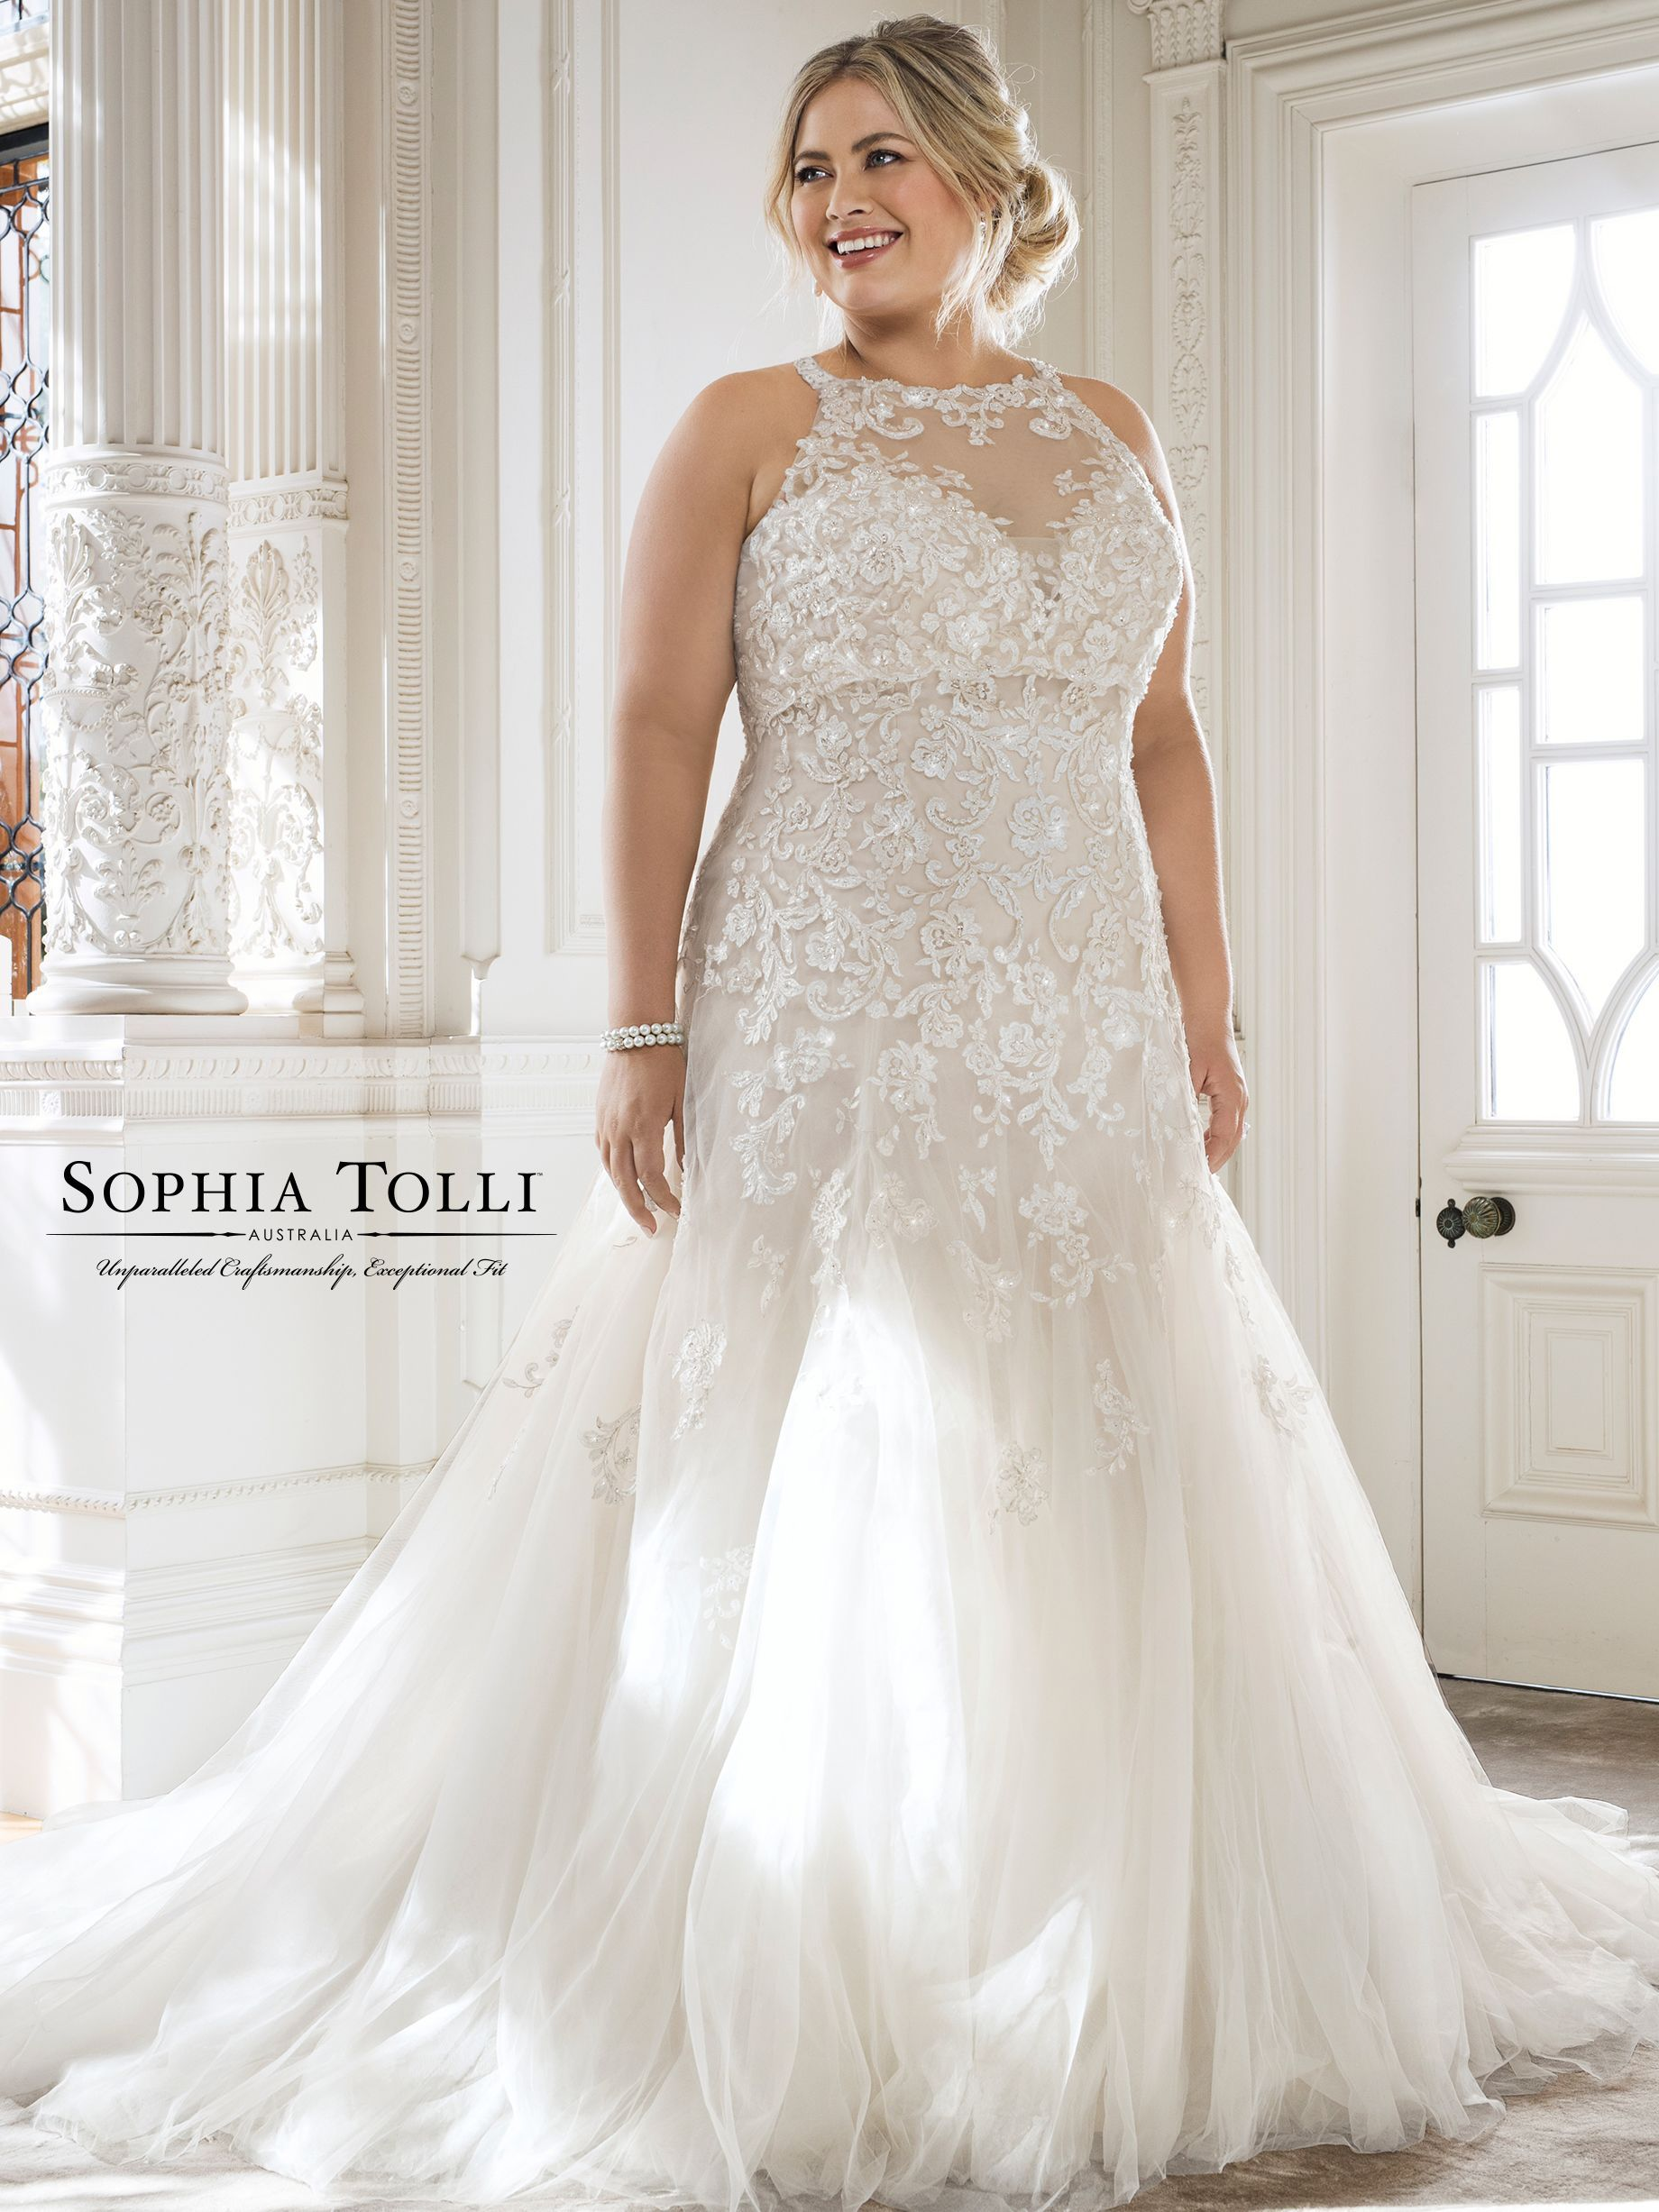 20 Gorgeous Plus Size Wedding Dresses Plus Wedding Dresses Sophia Tolli Wedding Dresses Wedding Dresses